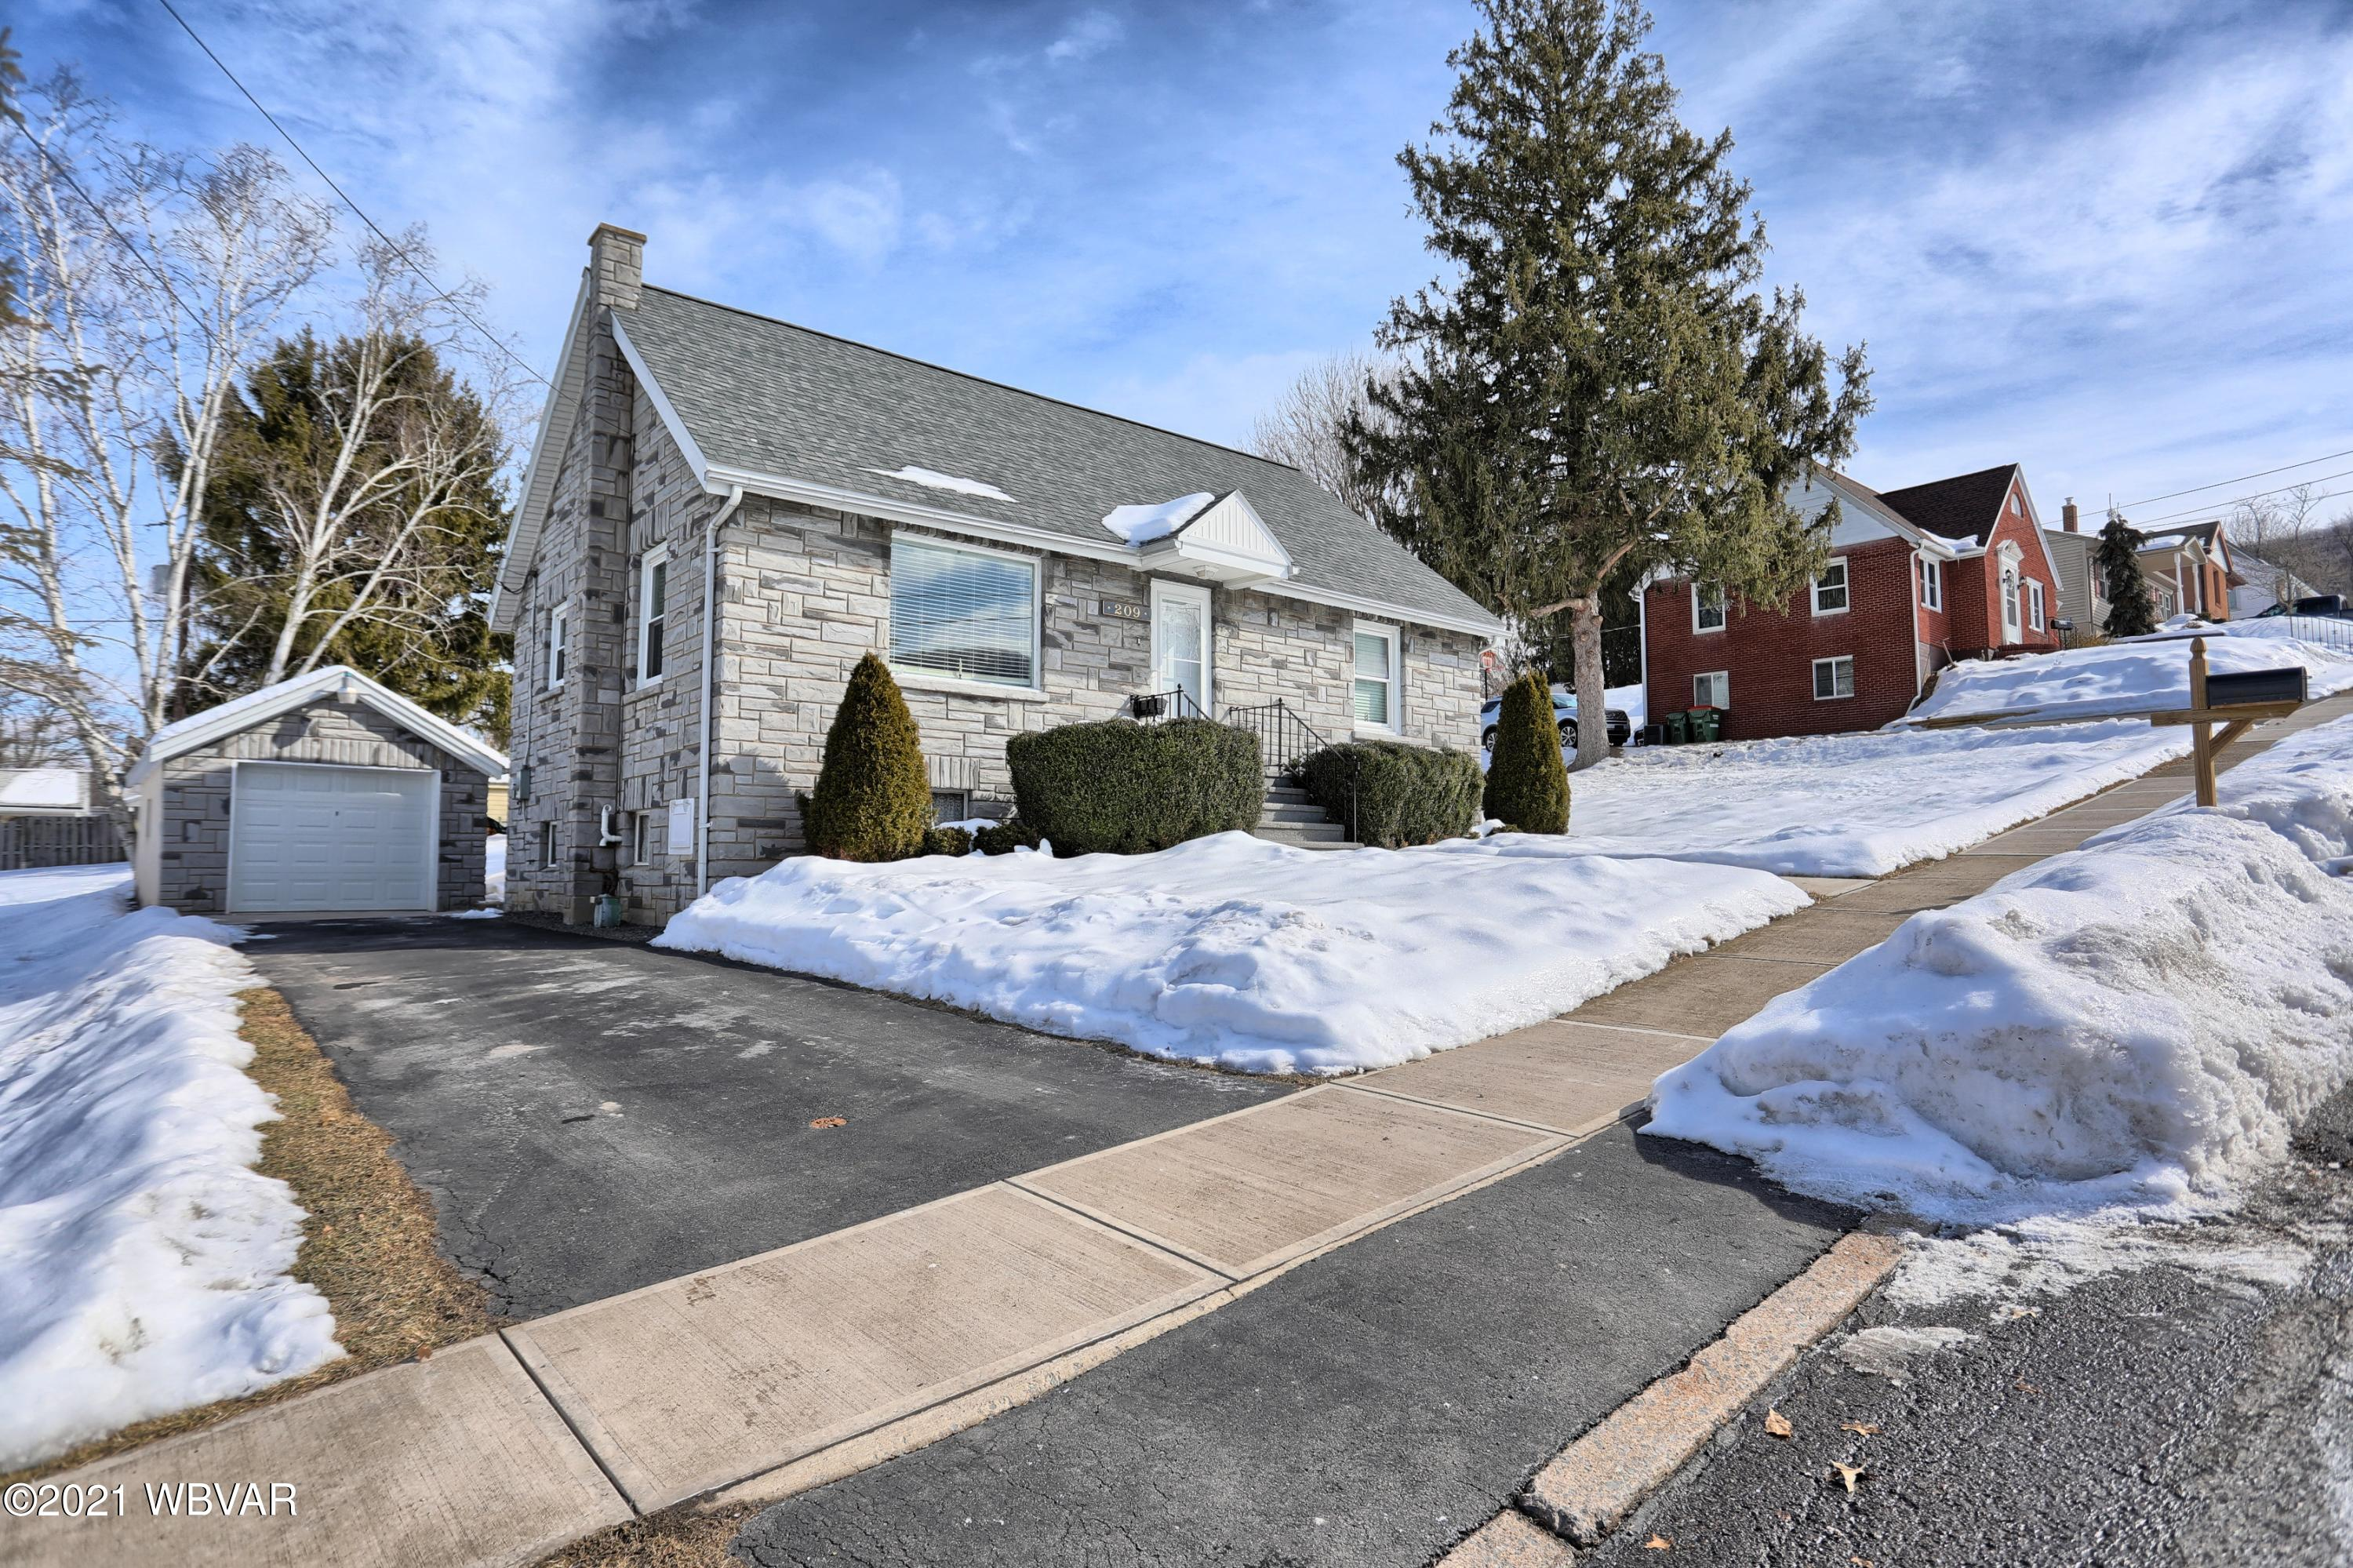 209 SUMMER STREET, Duboistown, PA 17702, 3 Bedrooms Bedrooms, ,1 BathroomBathrooms,Residential,For sale,SUMMER,WB-91909